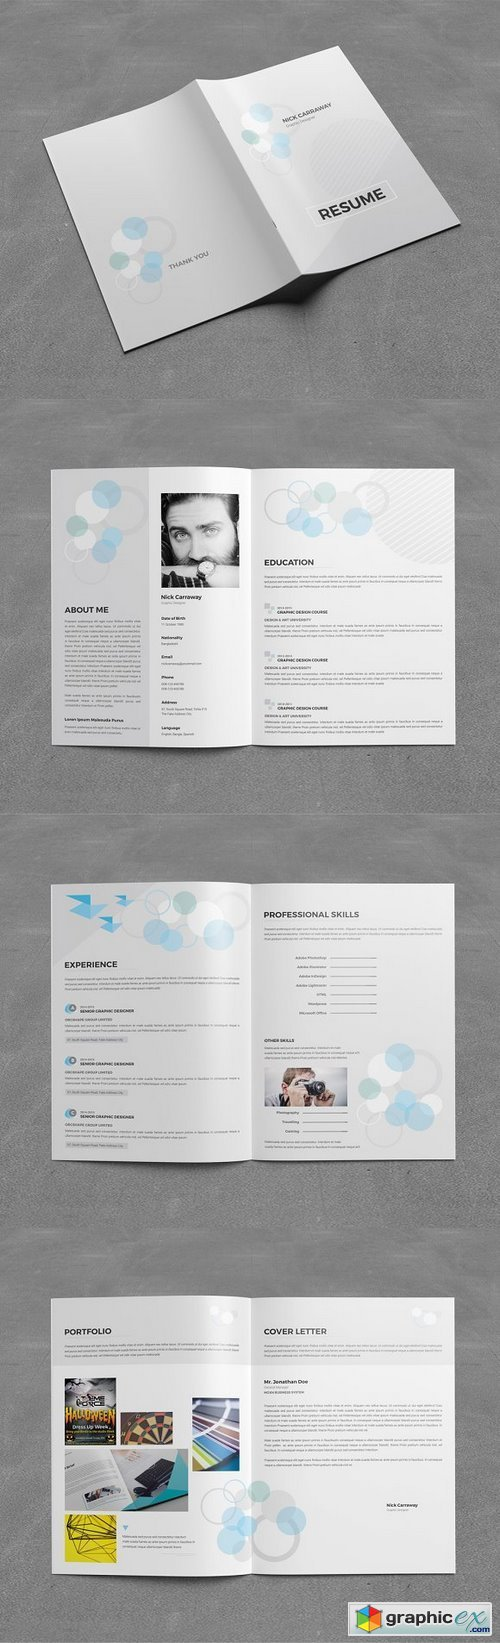 Resume Booklet (8 Pages) 1133748